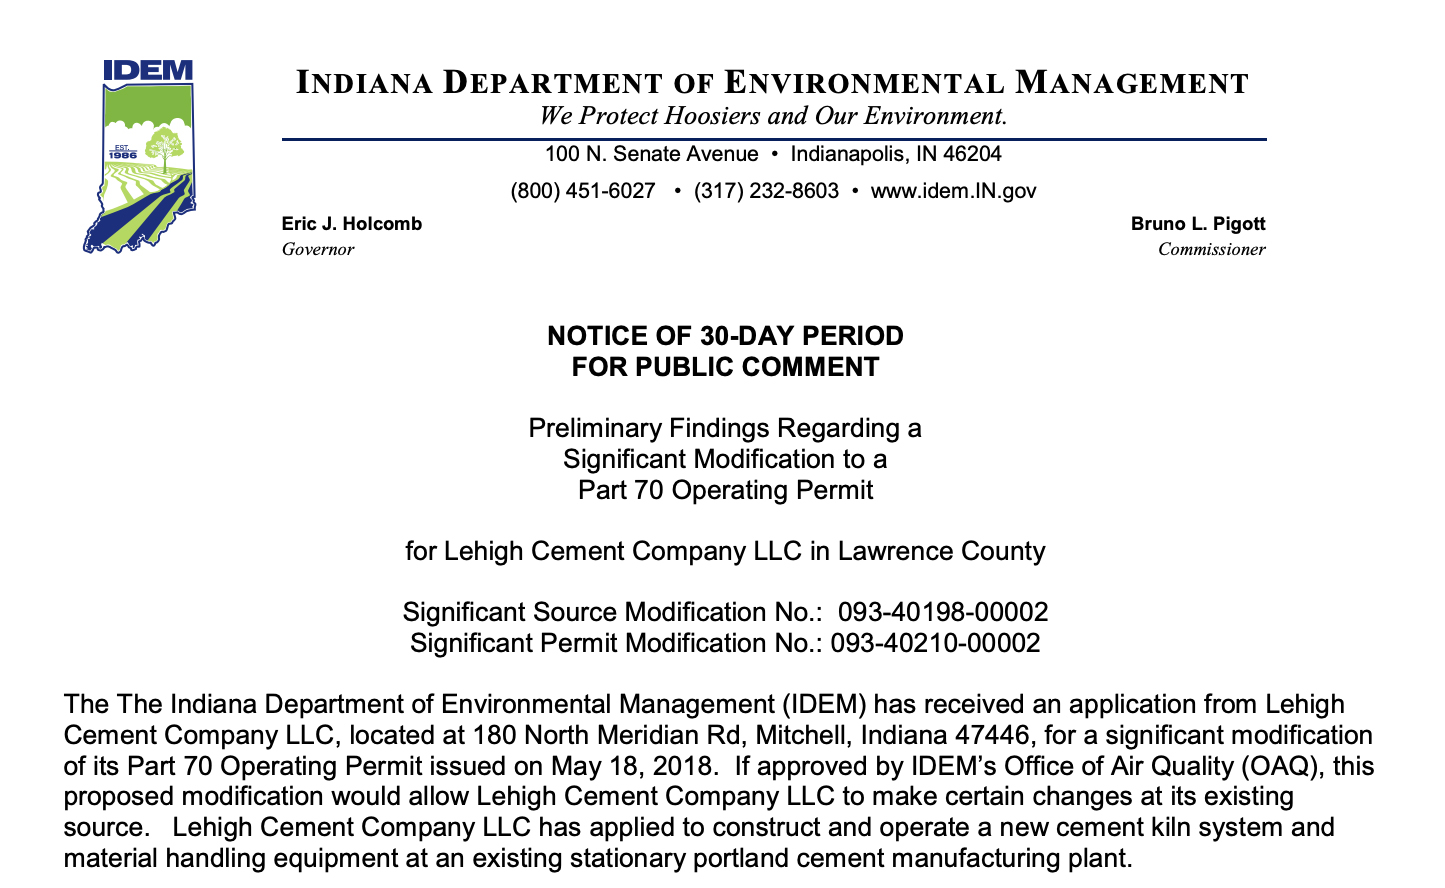 Image of permit application.